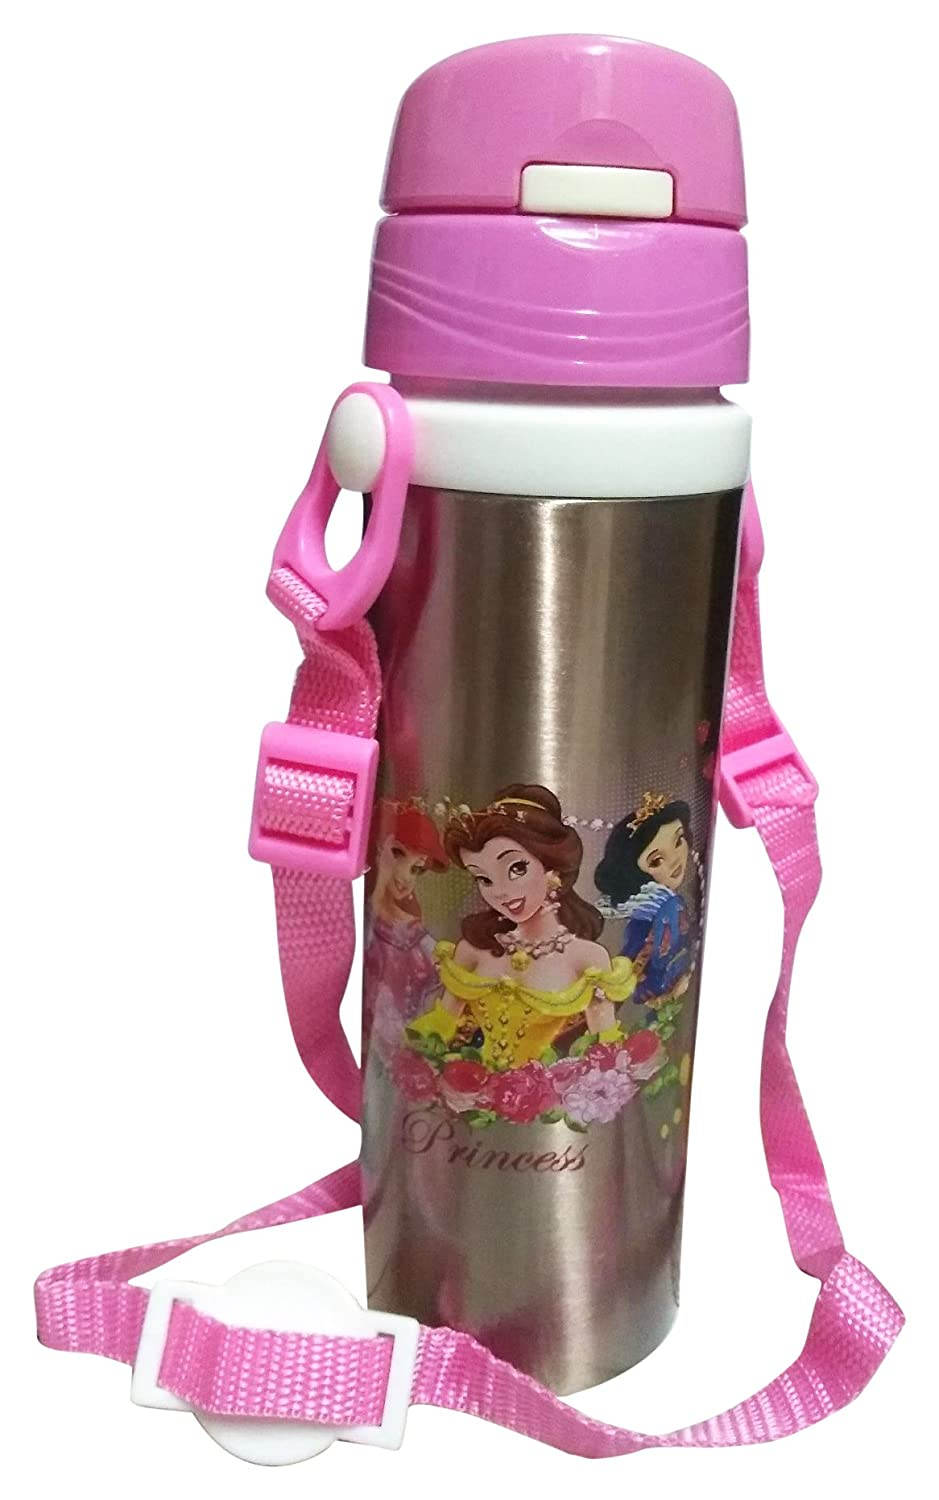 Buca Stylish Stainless Steel Insulated Water Bottle With Straw For Thermos Mini Carakter 500 Ml Kids 500ml Pink Toys Games